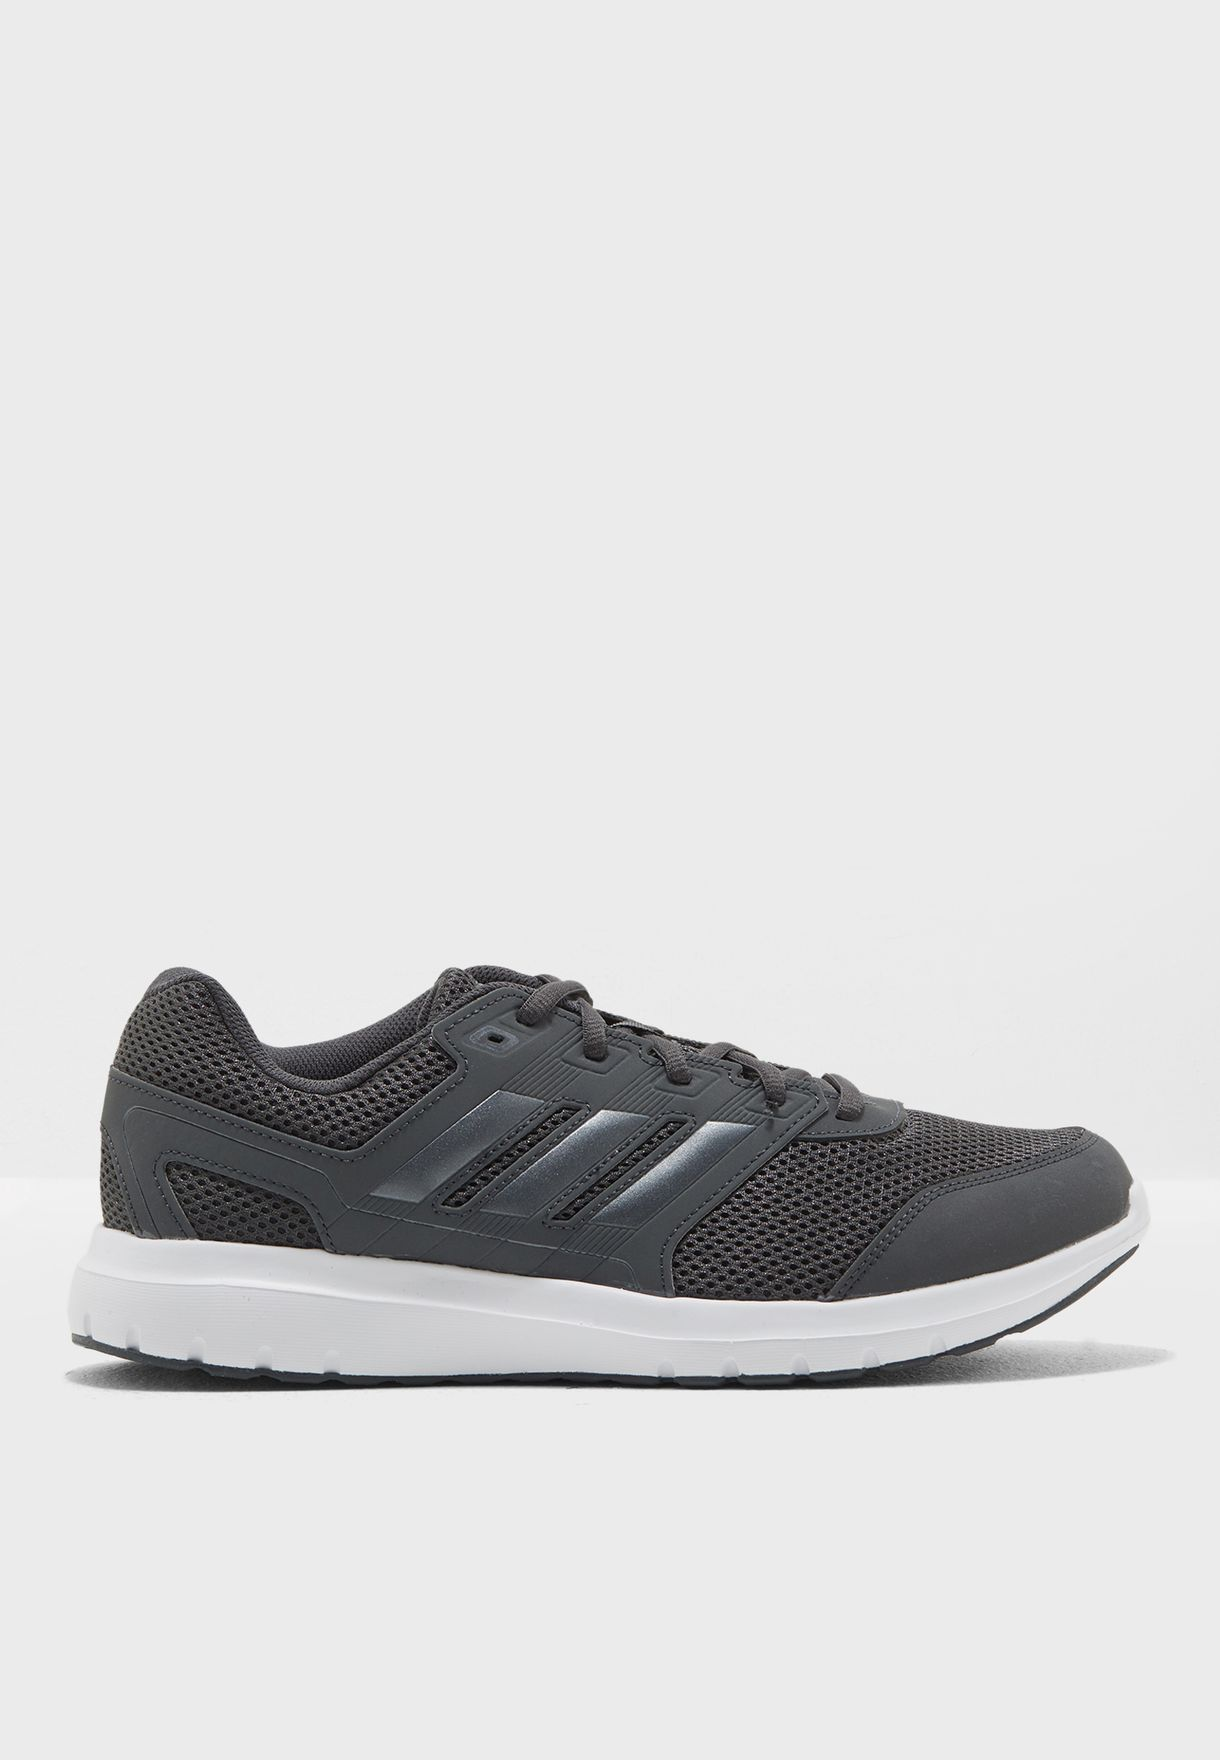 timeless design 455cf 4f4a8 Shop adidas grey Duramo Lite 2.0 CG4044 for Men in Saudi - A